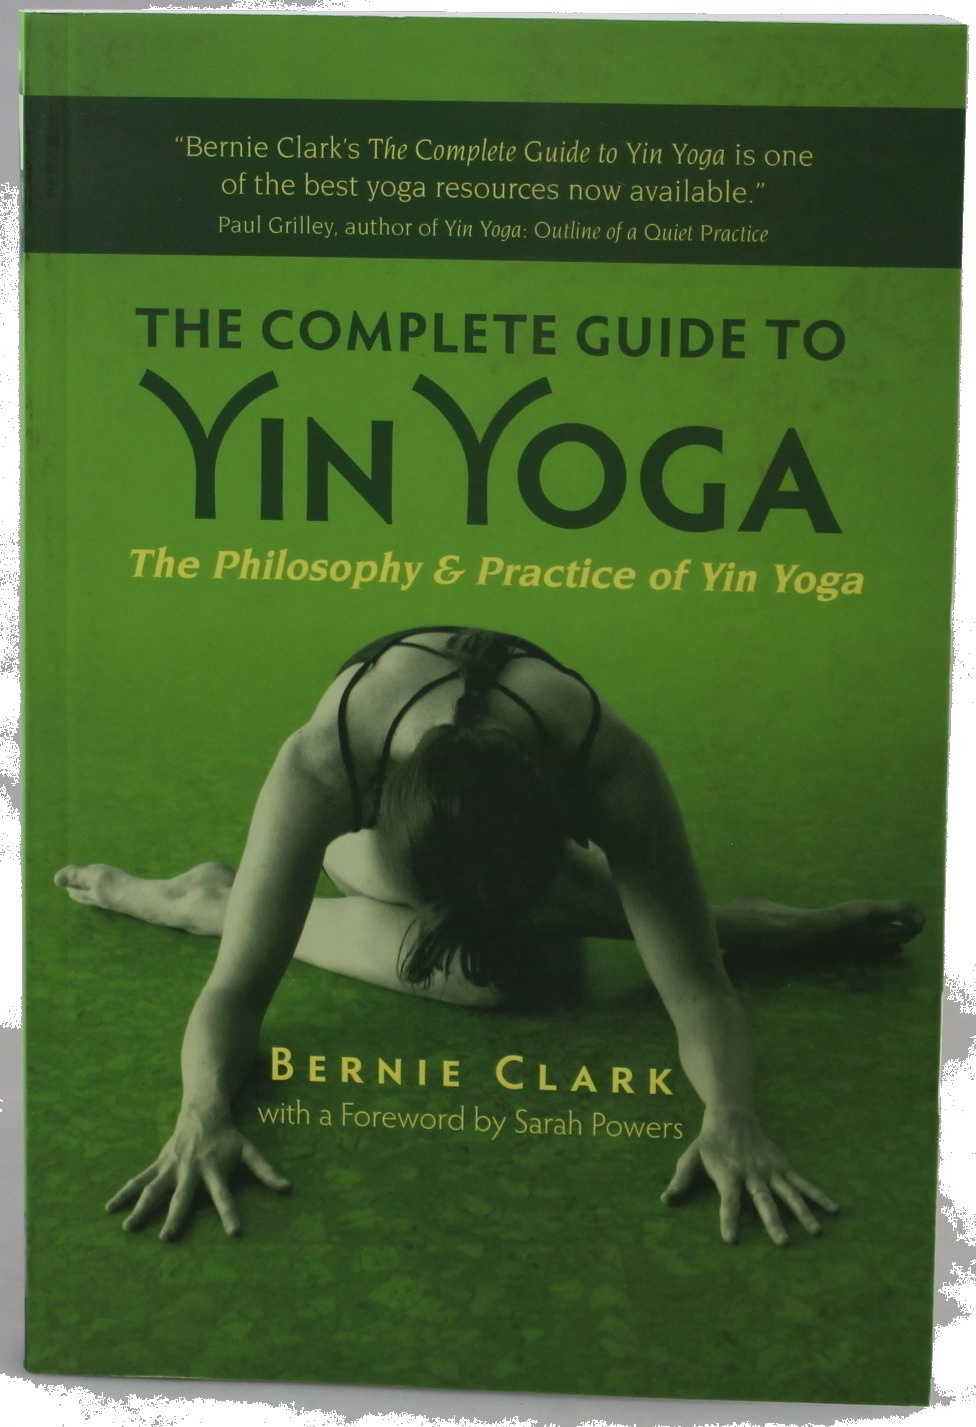 The Complete Guide To Yin Yoga Bernie Clark Sarah Powers Foreword Shop Online For Books In New Zealand